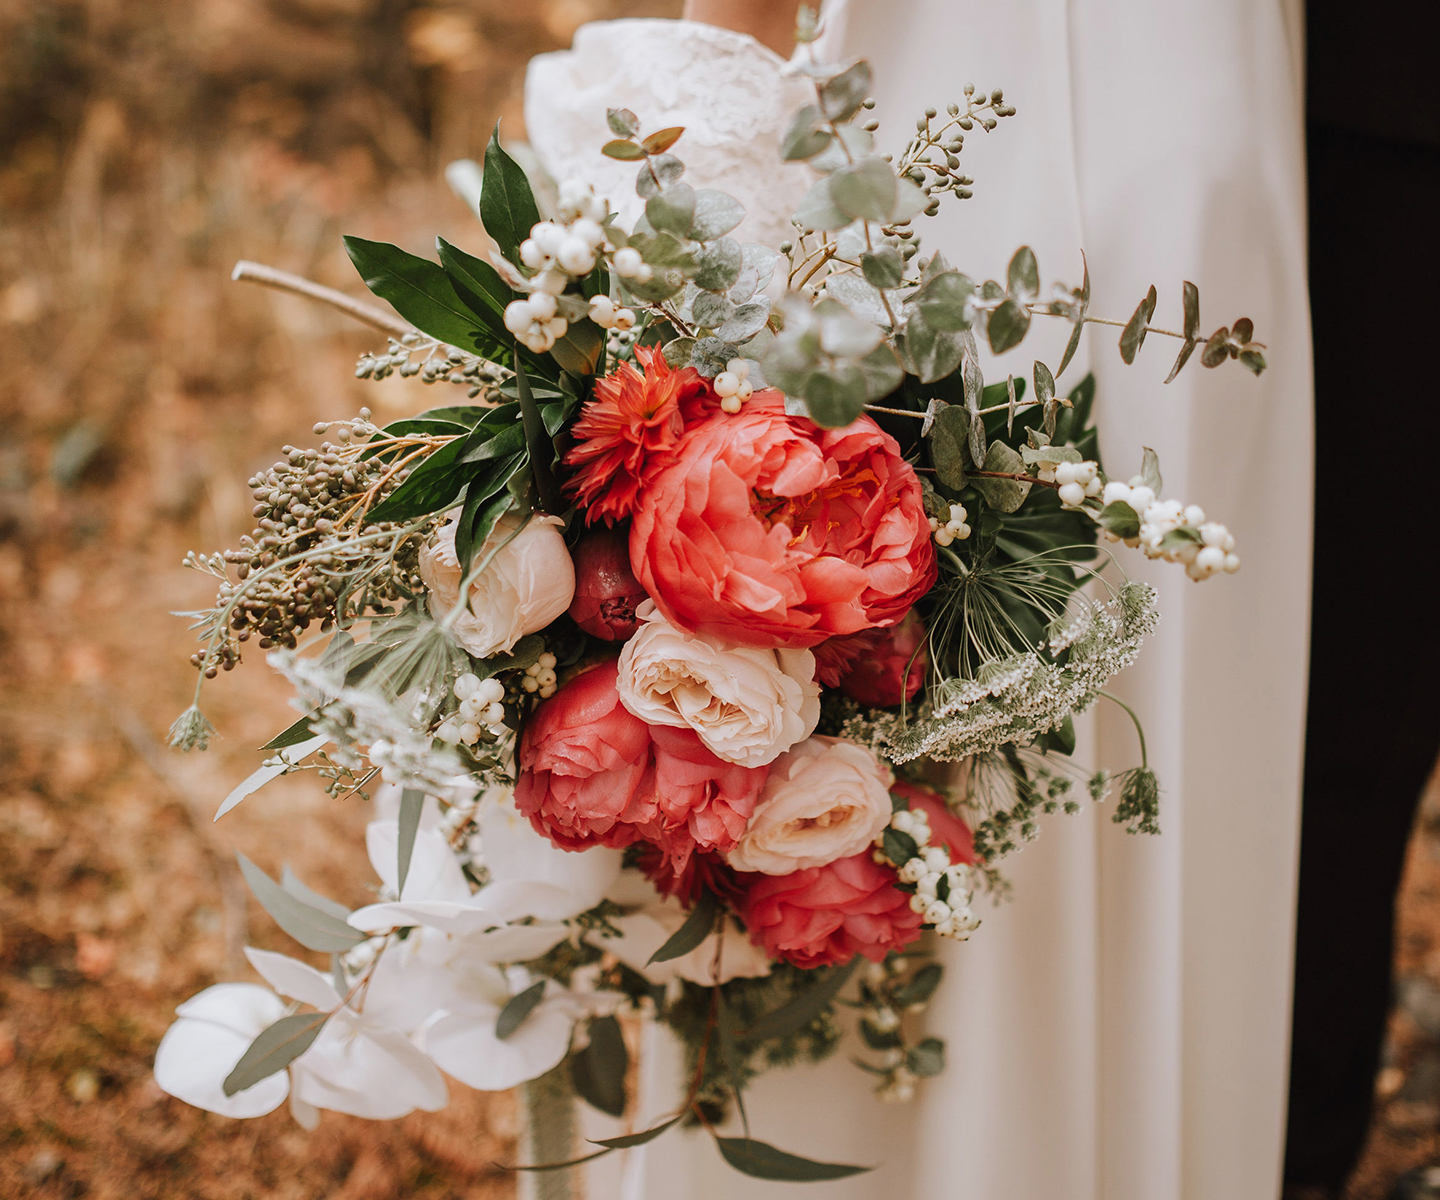 Bridal Bouquet Inspiration for Summer: 12 of the Prettiest Bouquets We've Seen This Summer in Alberta and the Rockies